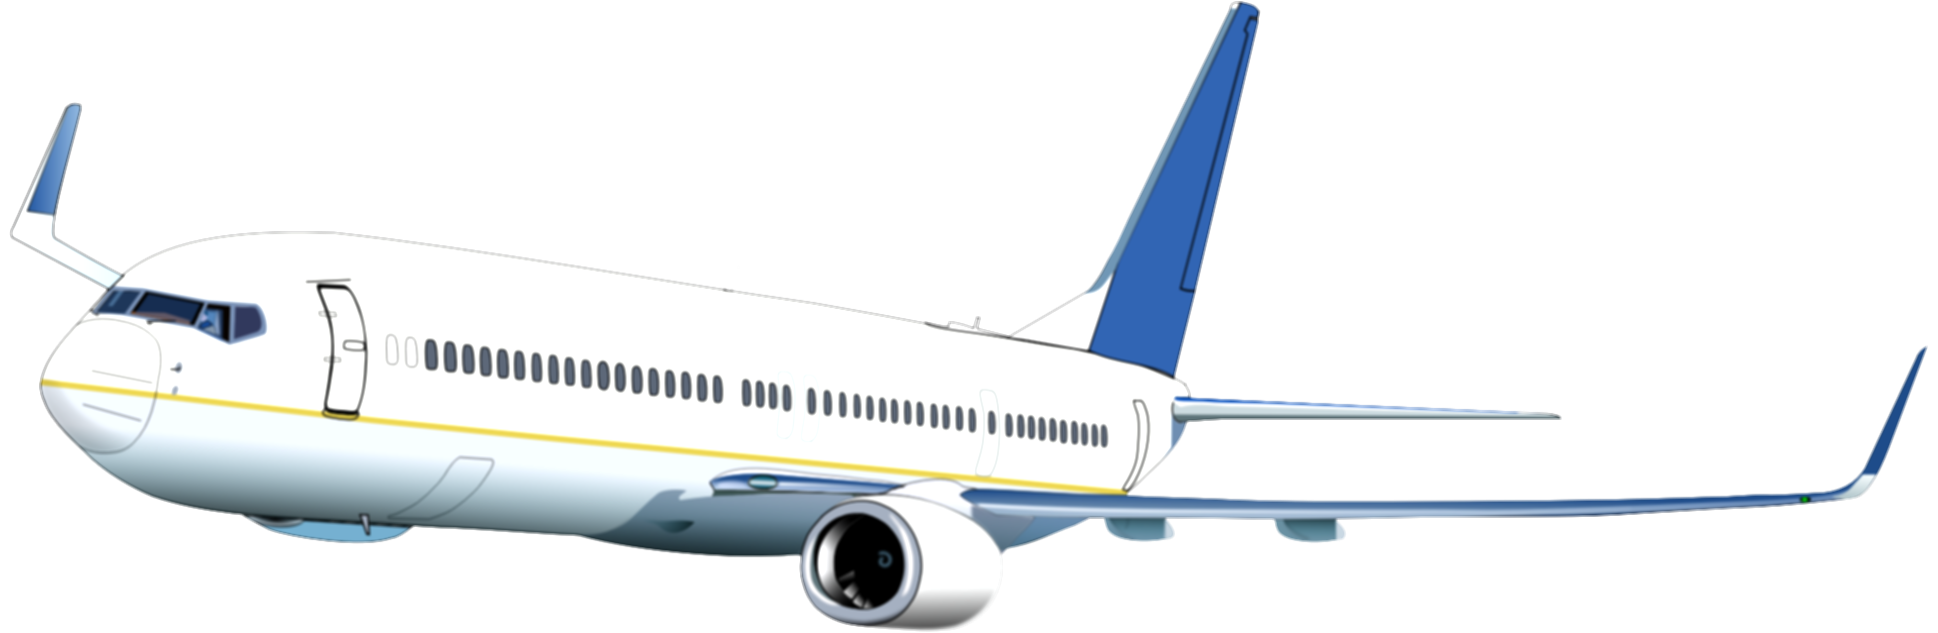 aircraft vector airplane clipart